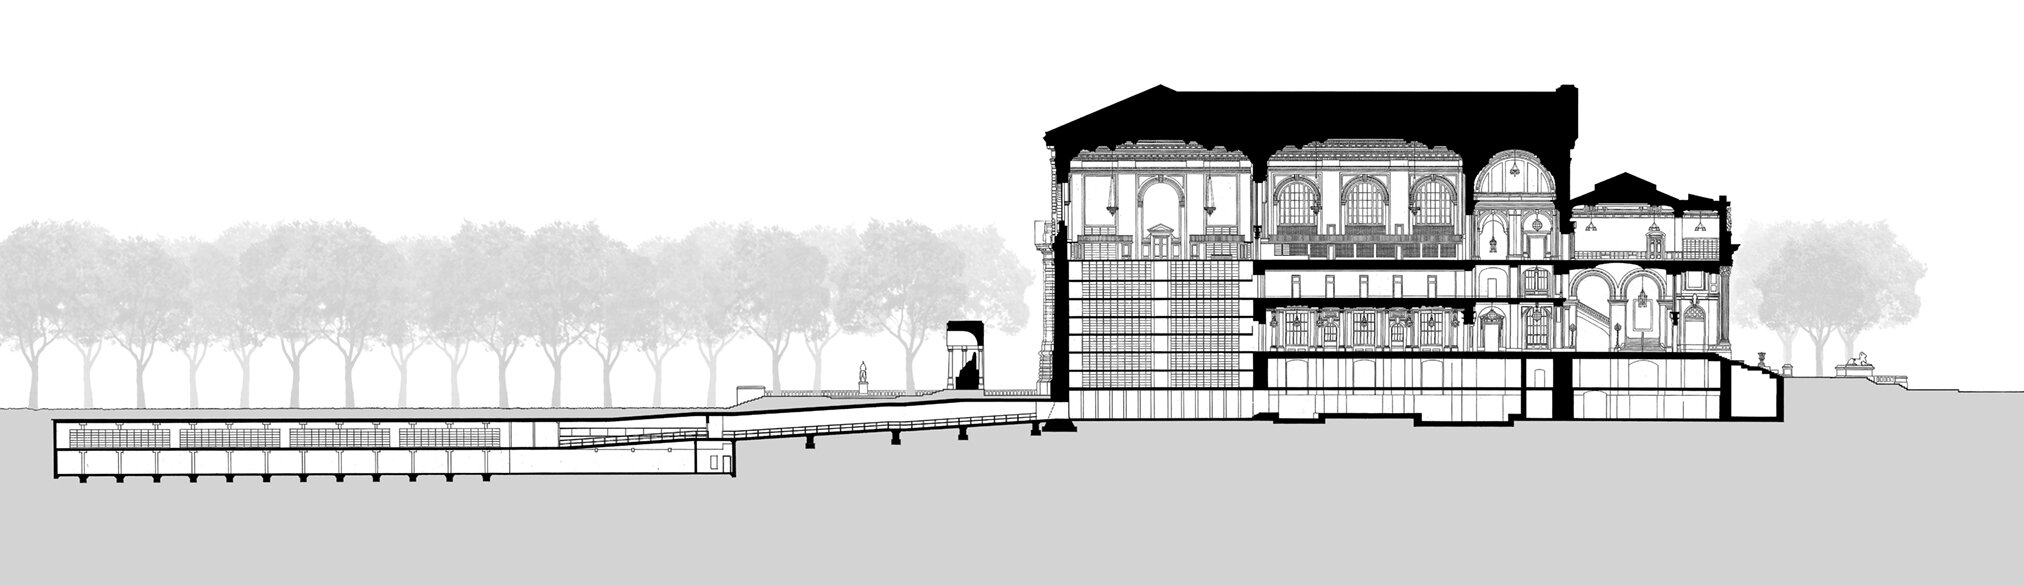 Section from South through Bryant Park stacks expansion